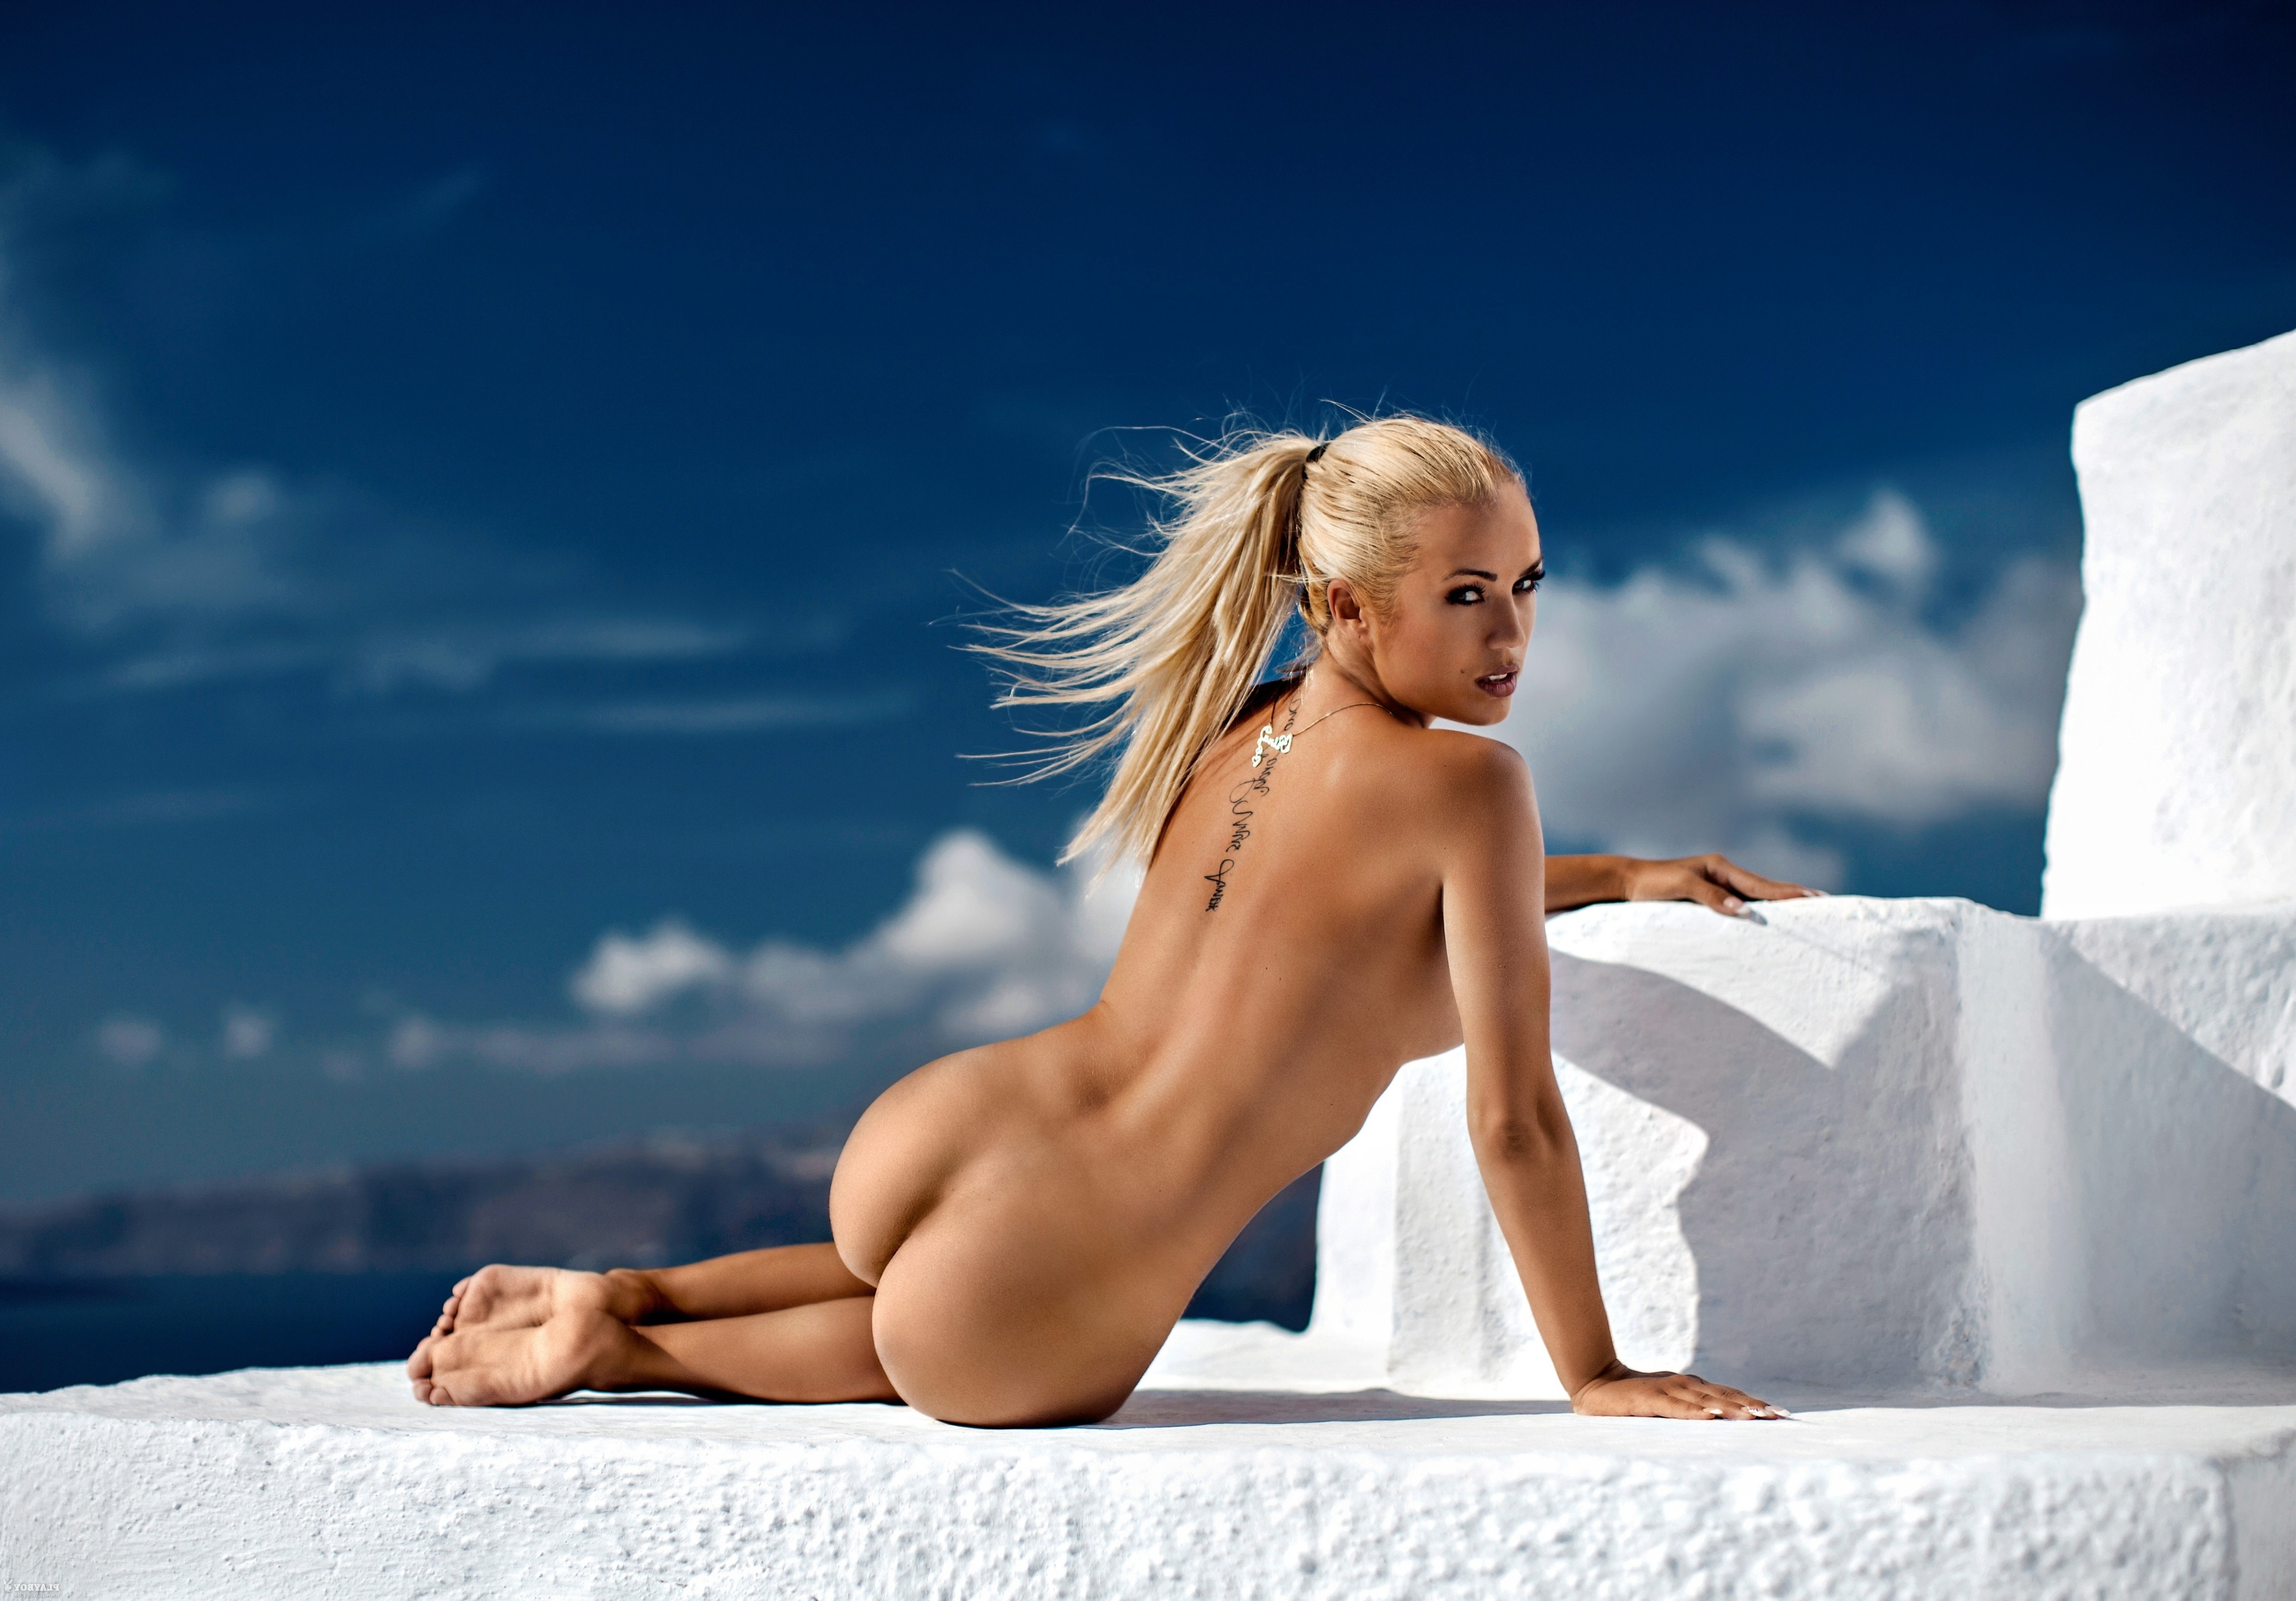 girl poses nude butt